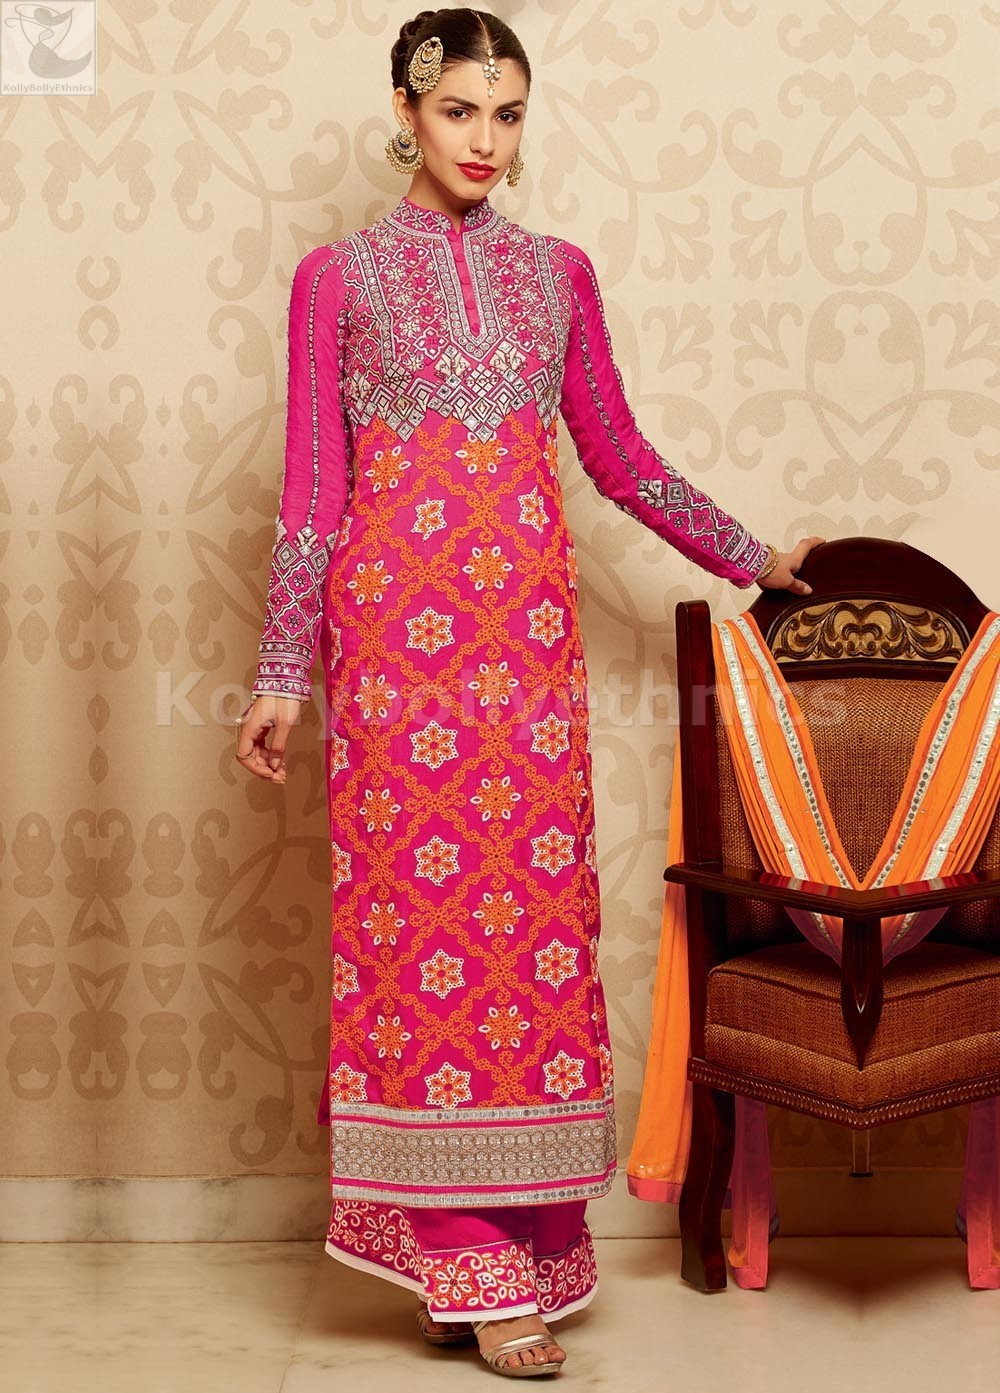 how to cut kameez with measurements